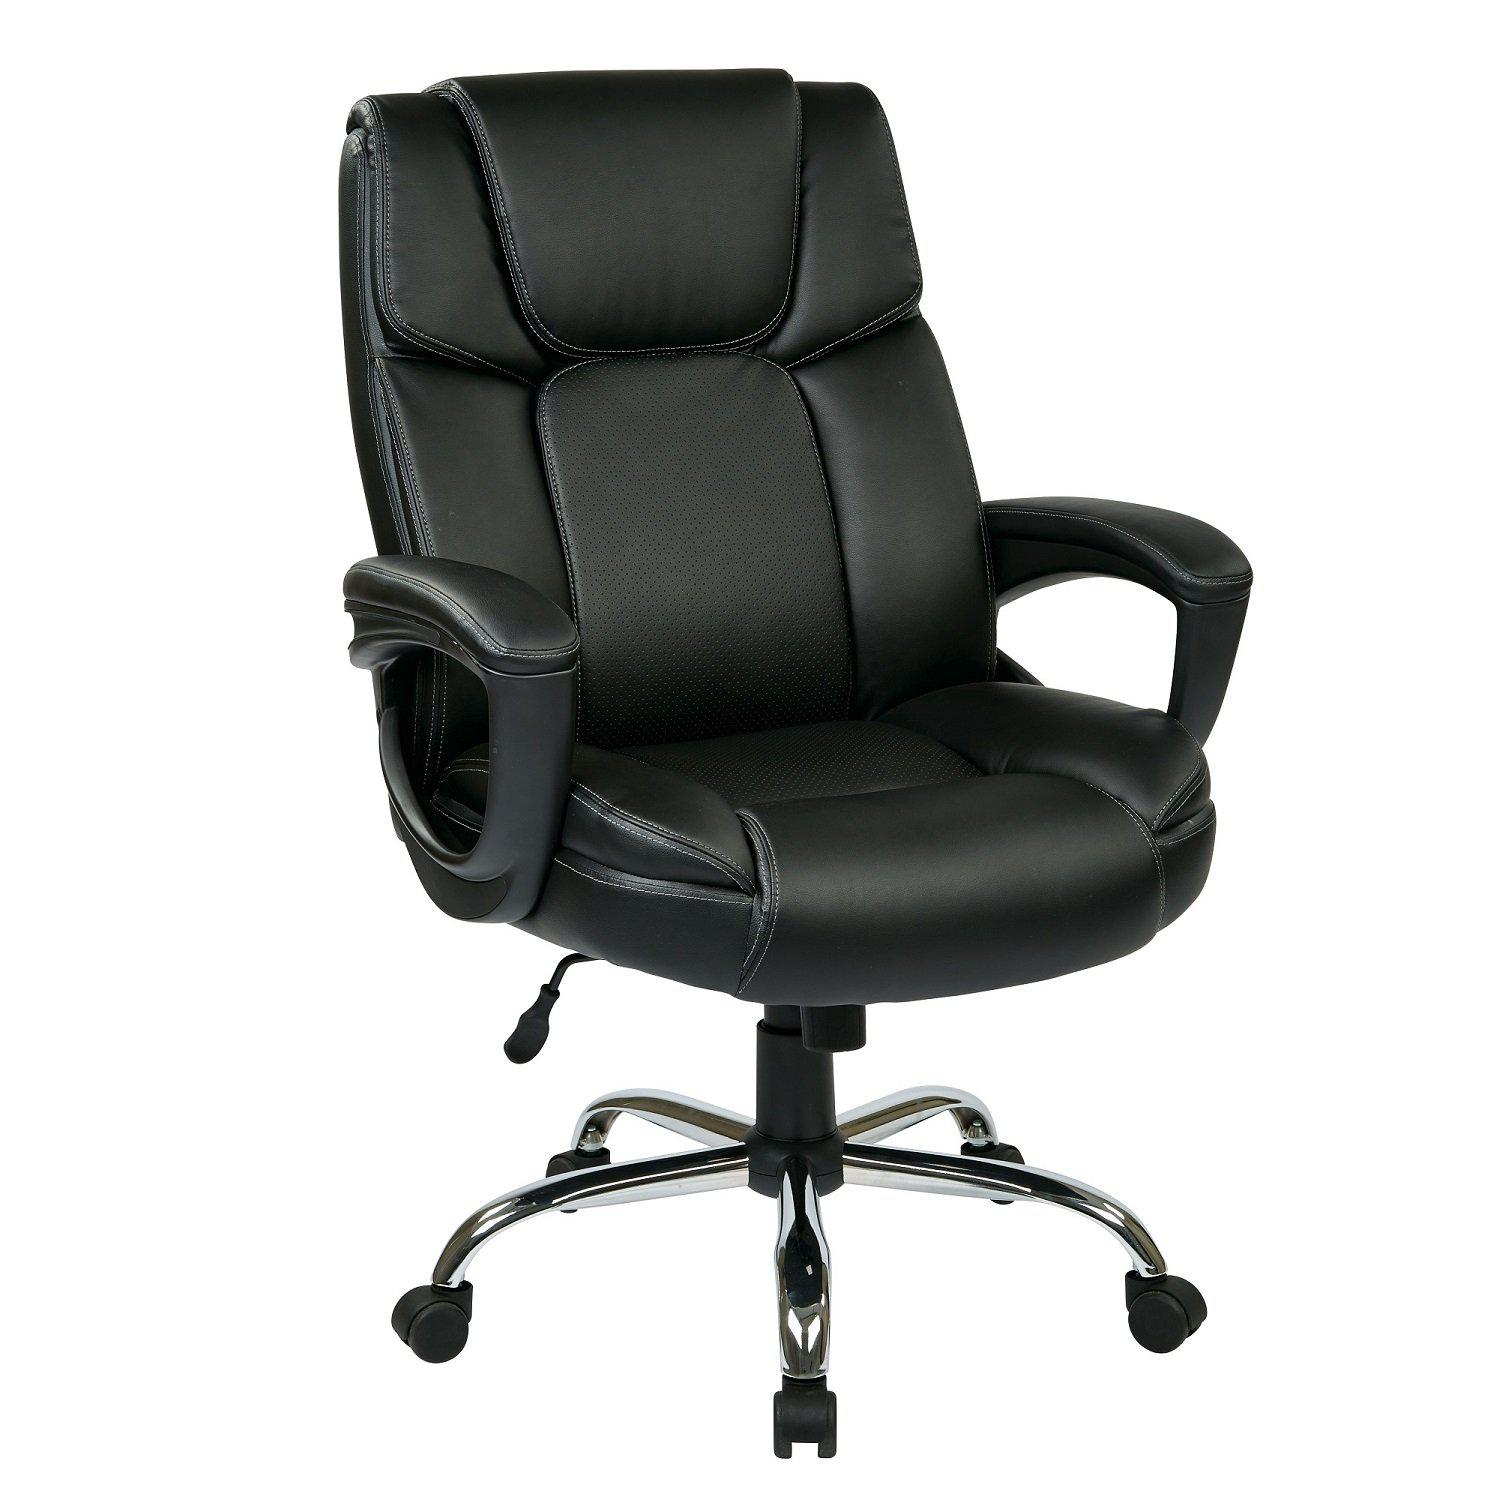 Executive Bonded Leather Big Man's Chair with Padded Loop Arms and Chrome Base